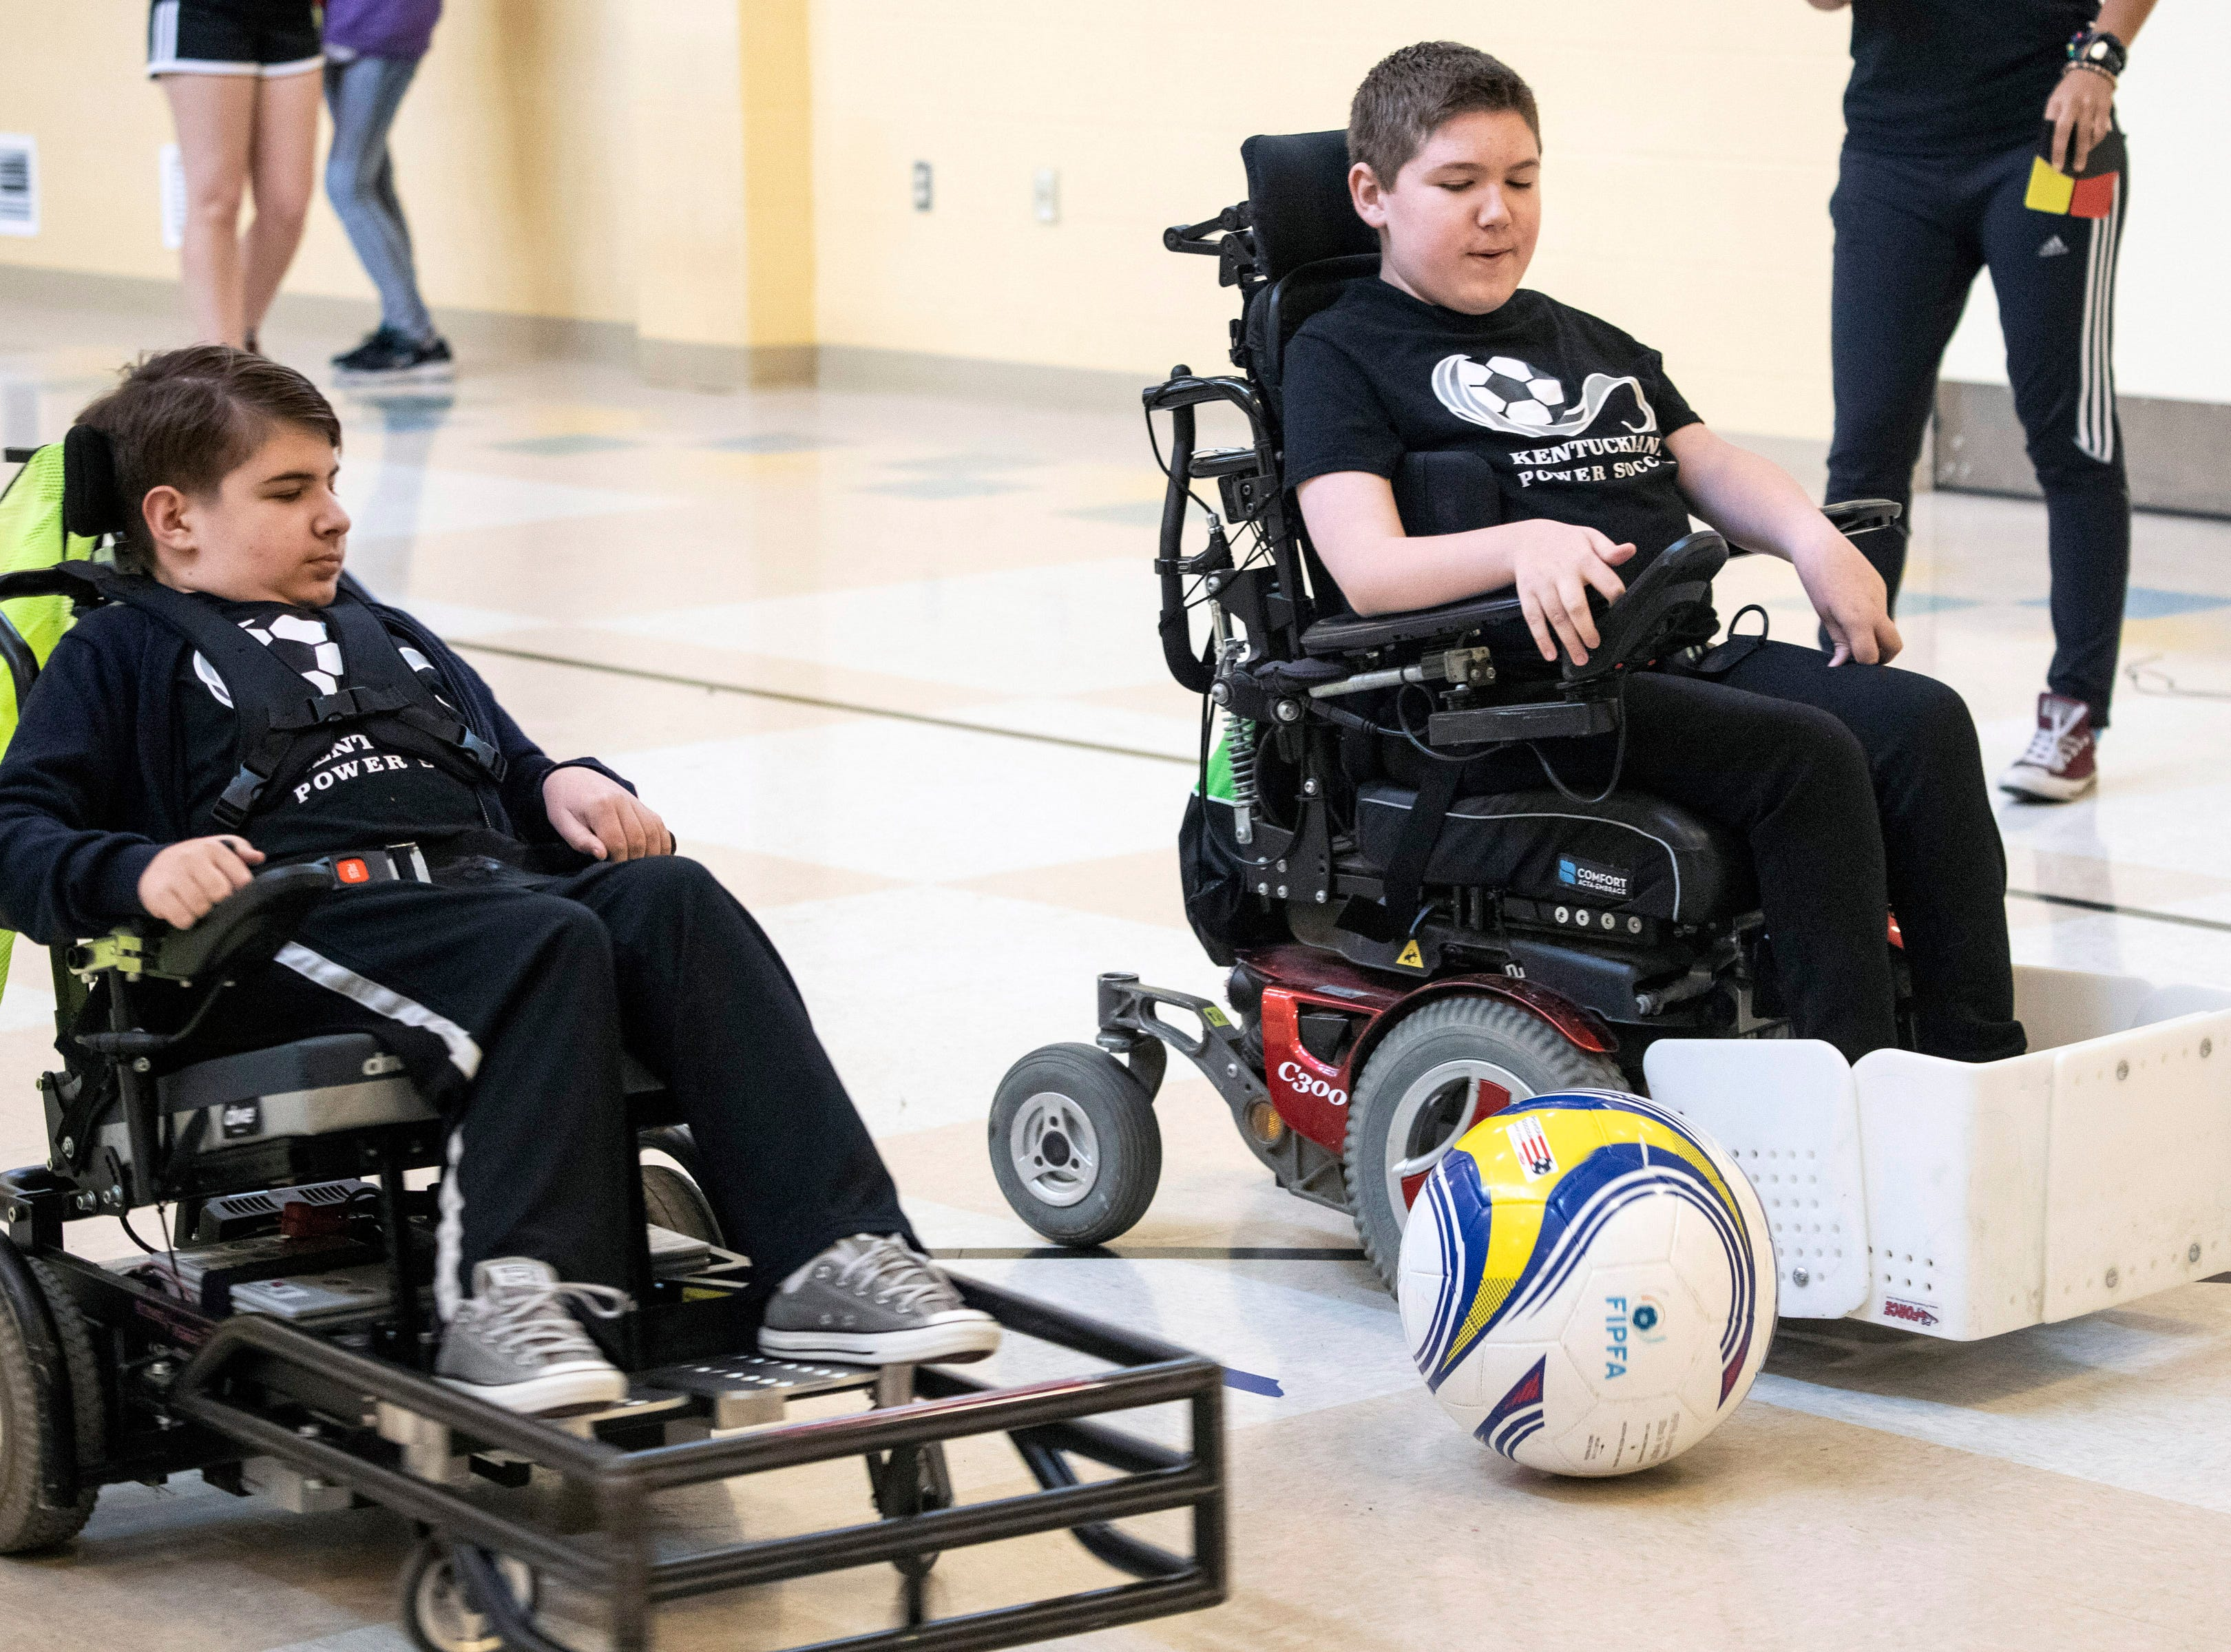 Cosmo Rudd works on moves with teammate Connor deLuca during a Louisville City Power Soccer practice on Saturday. April 20, 2019